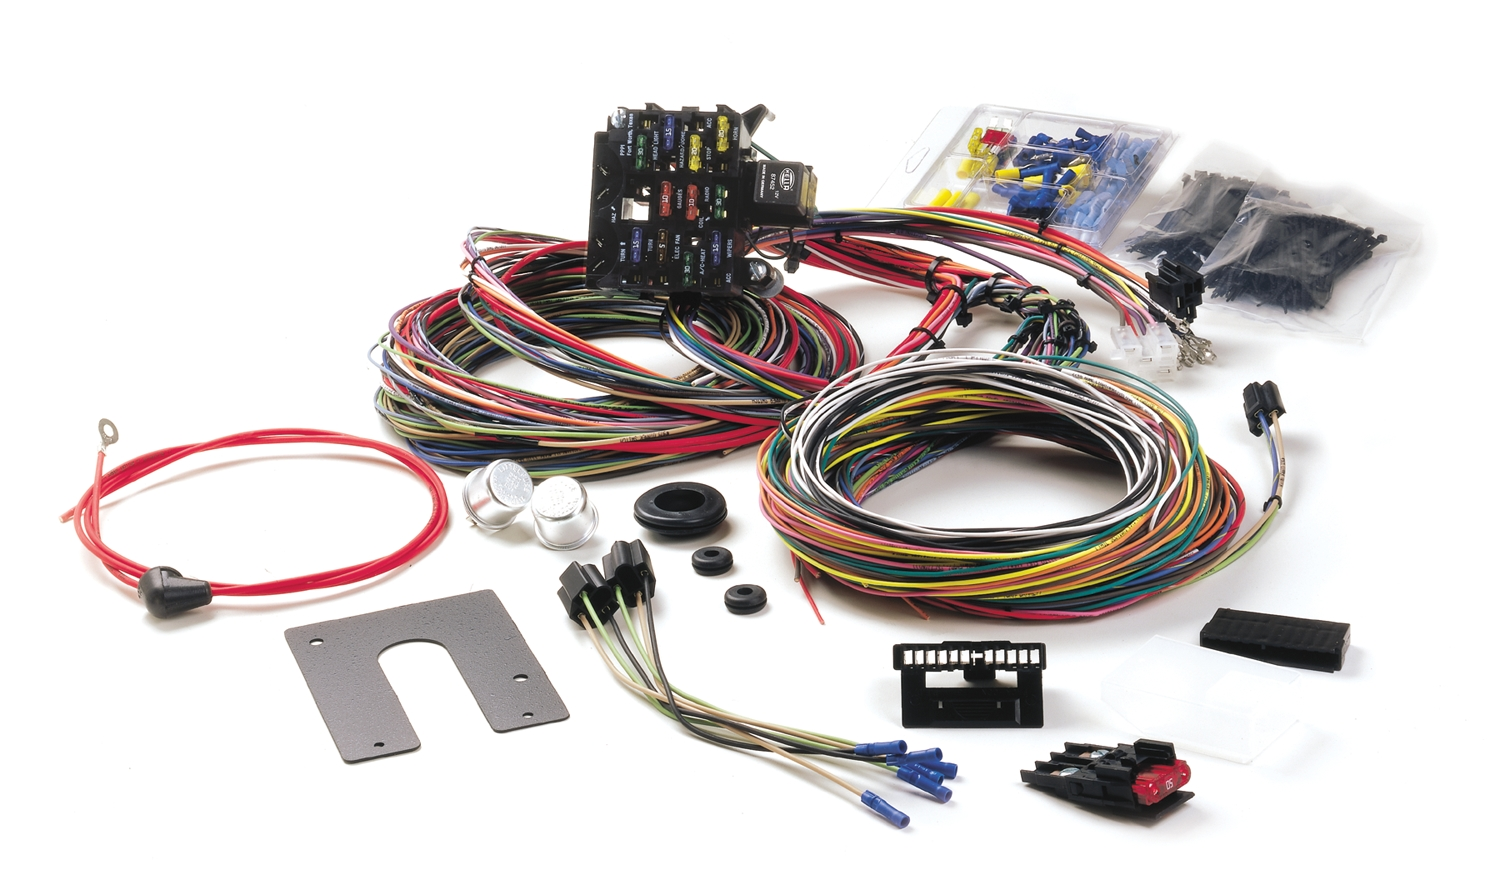 10101 painless performance harness installation in '39 ford hotrod hotline best street rod wiring harness at aneh.co